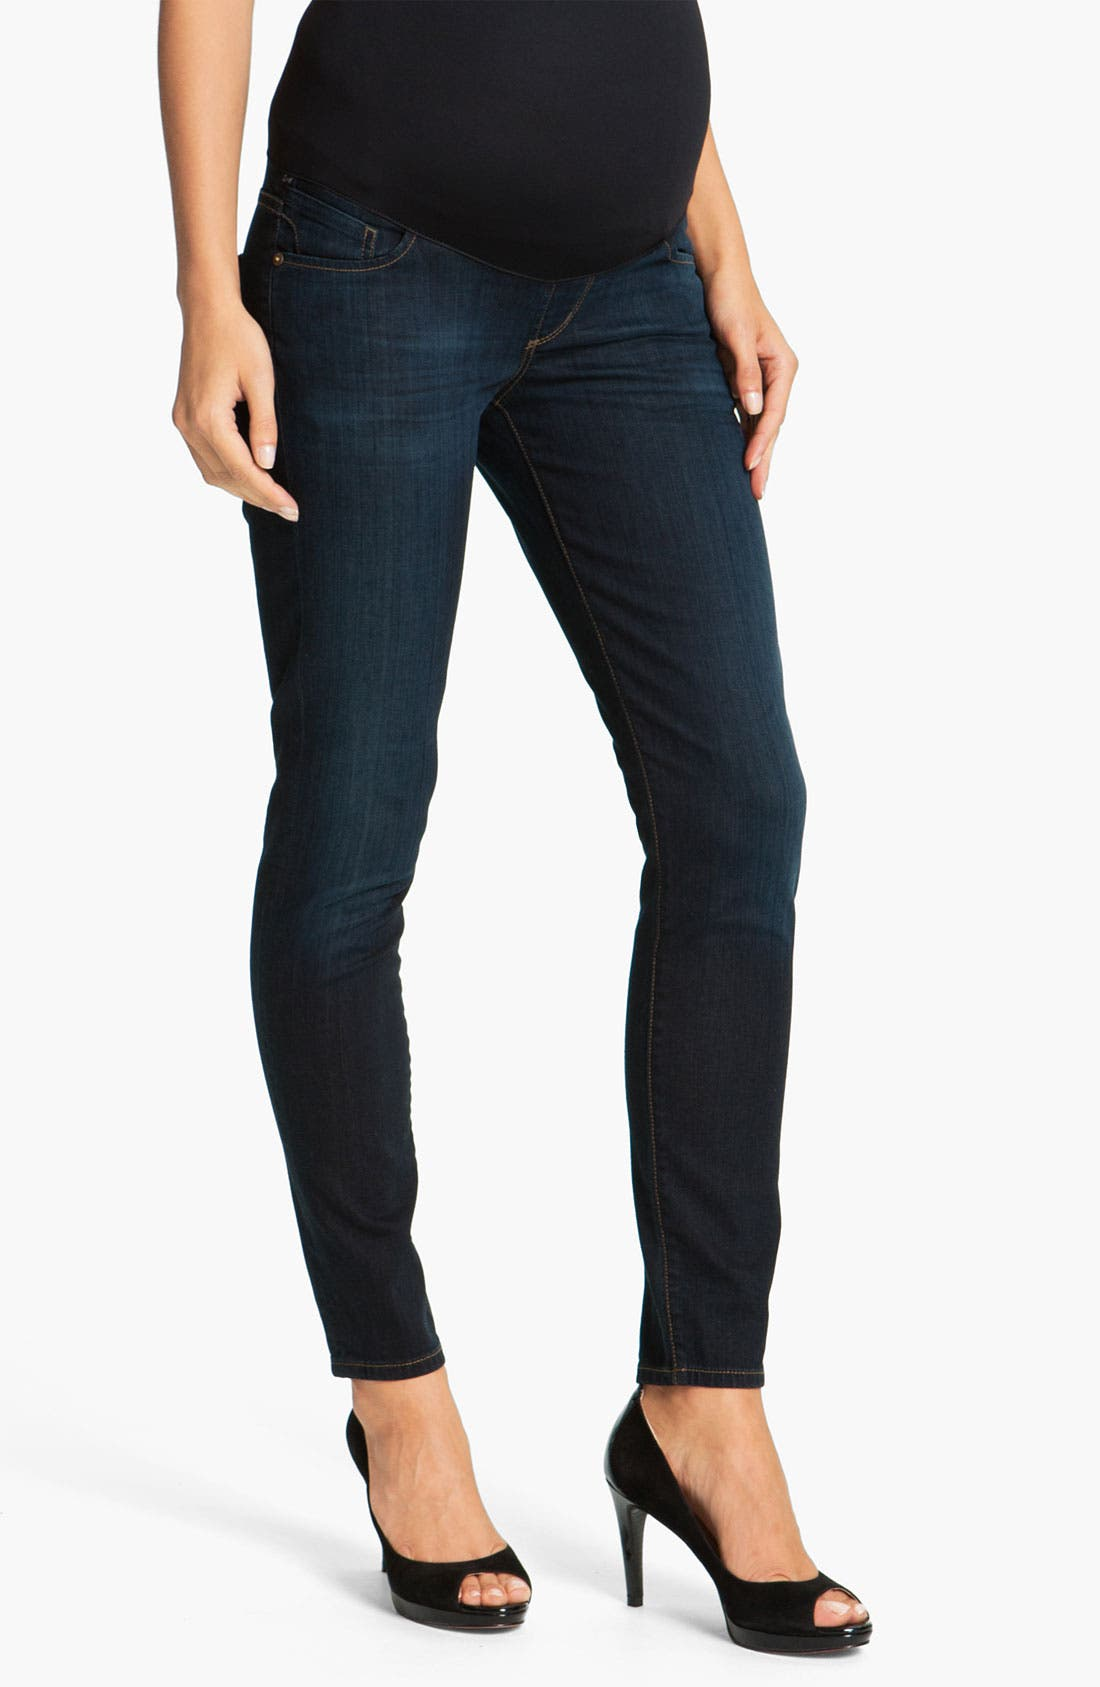 Alternate Image 1 Selected - Citizens of Humanity 'Ava' Maternity Straight Leg Jeans (Faith)